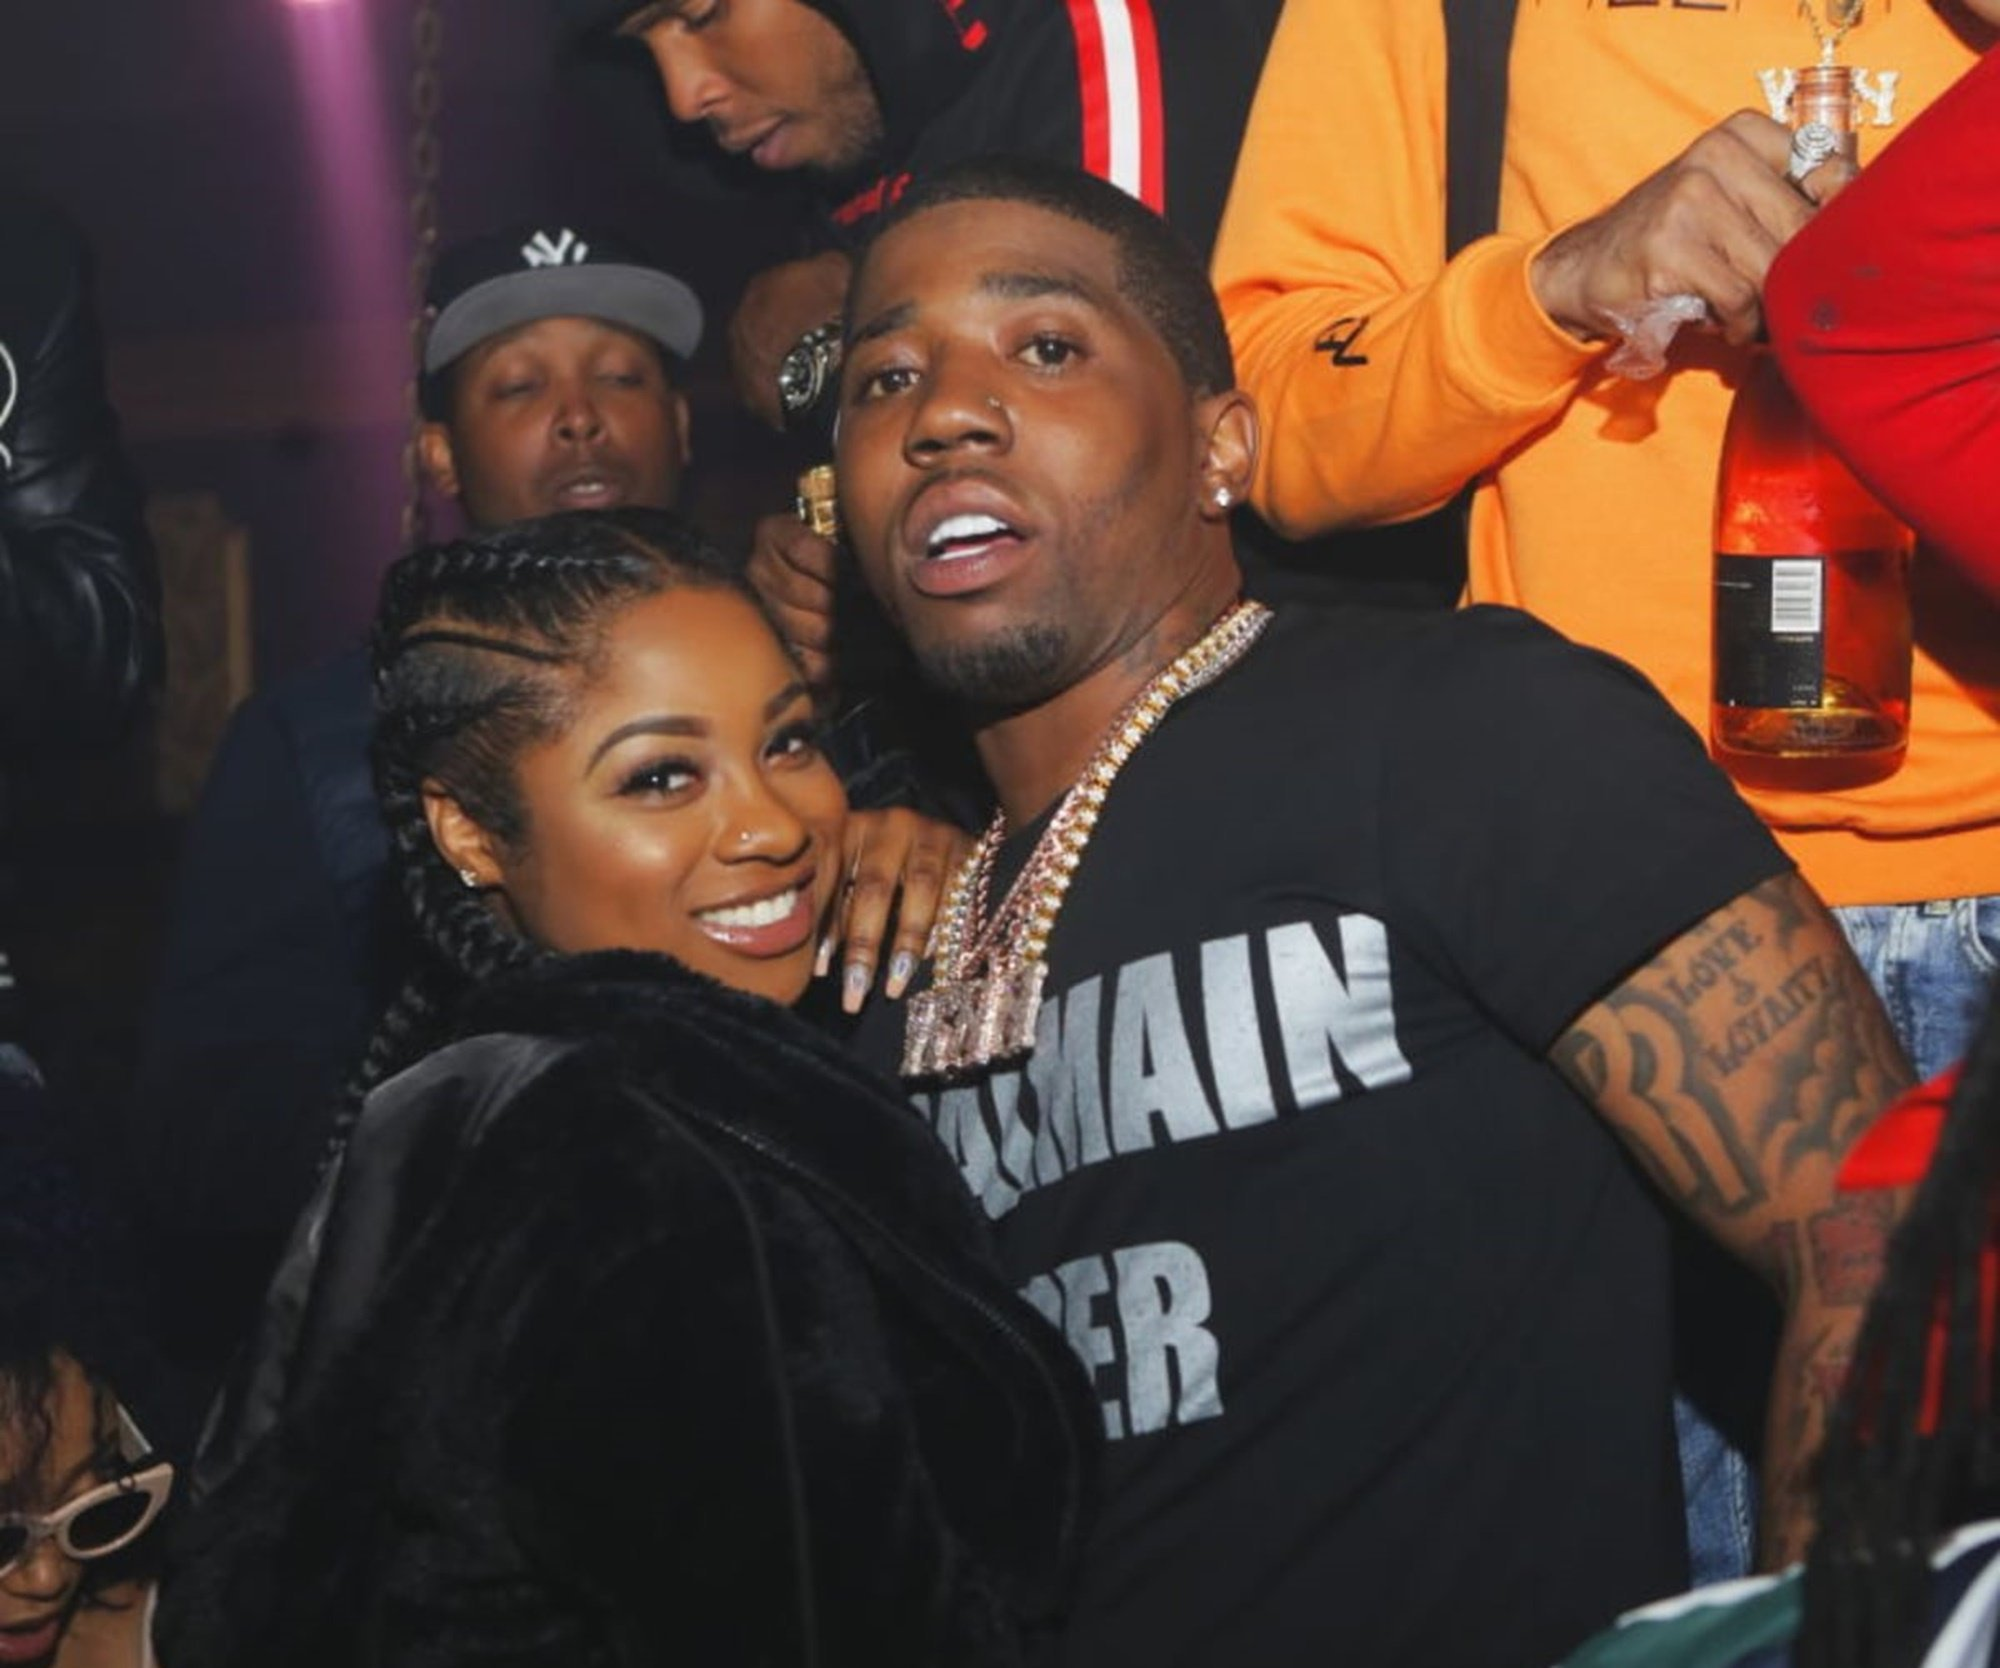 Reginae Carter Upsets Fans By Getting Back Together With YFN Lucci - See The Video